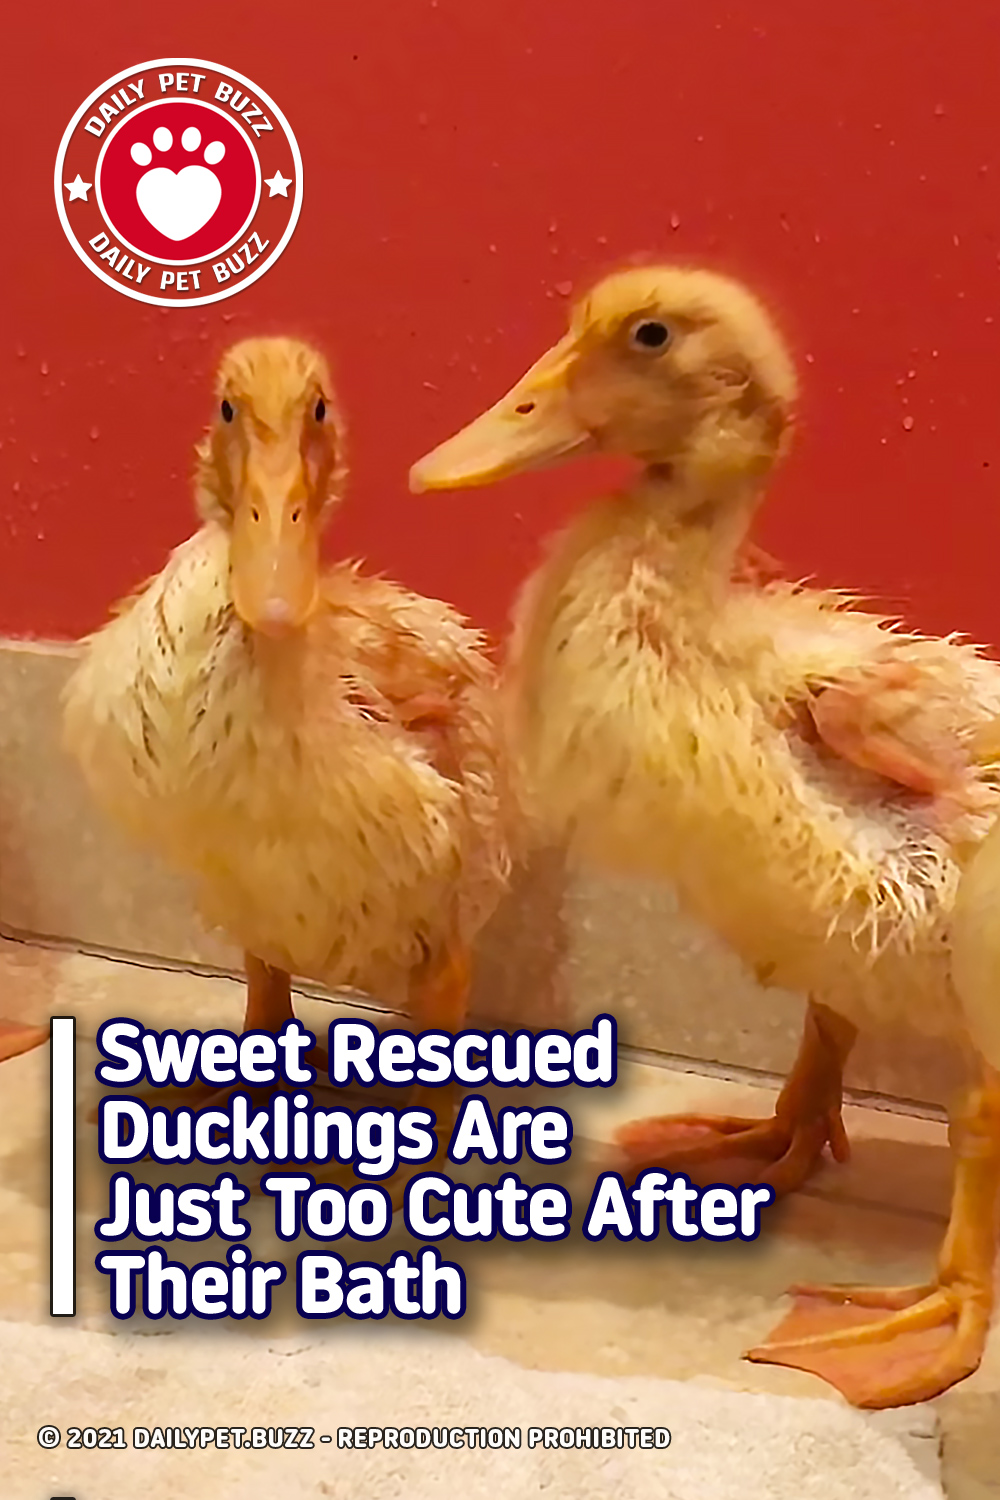 Sweet Rescued Ducklings Are Just Too Cute After Their Bath